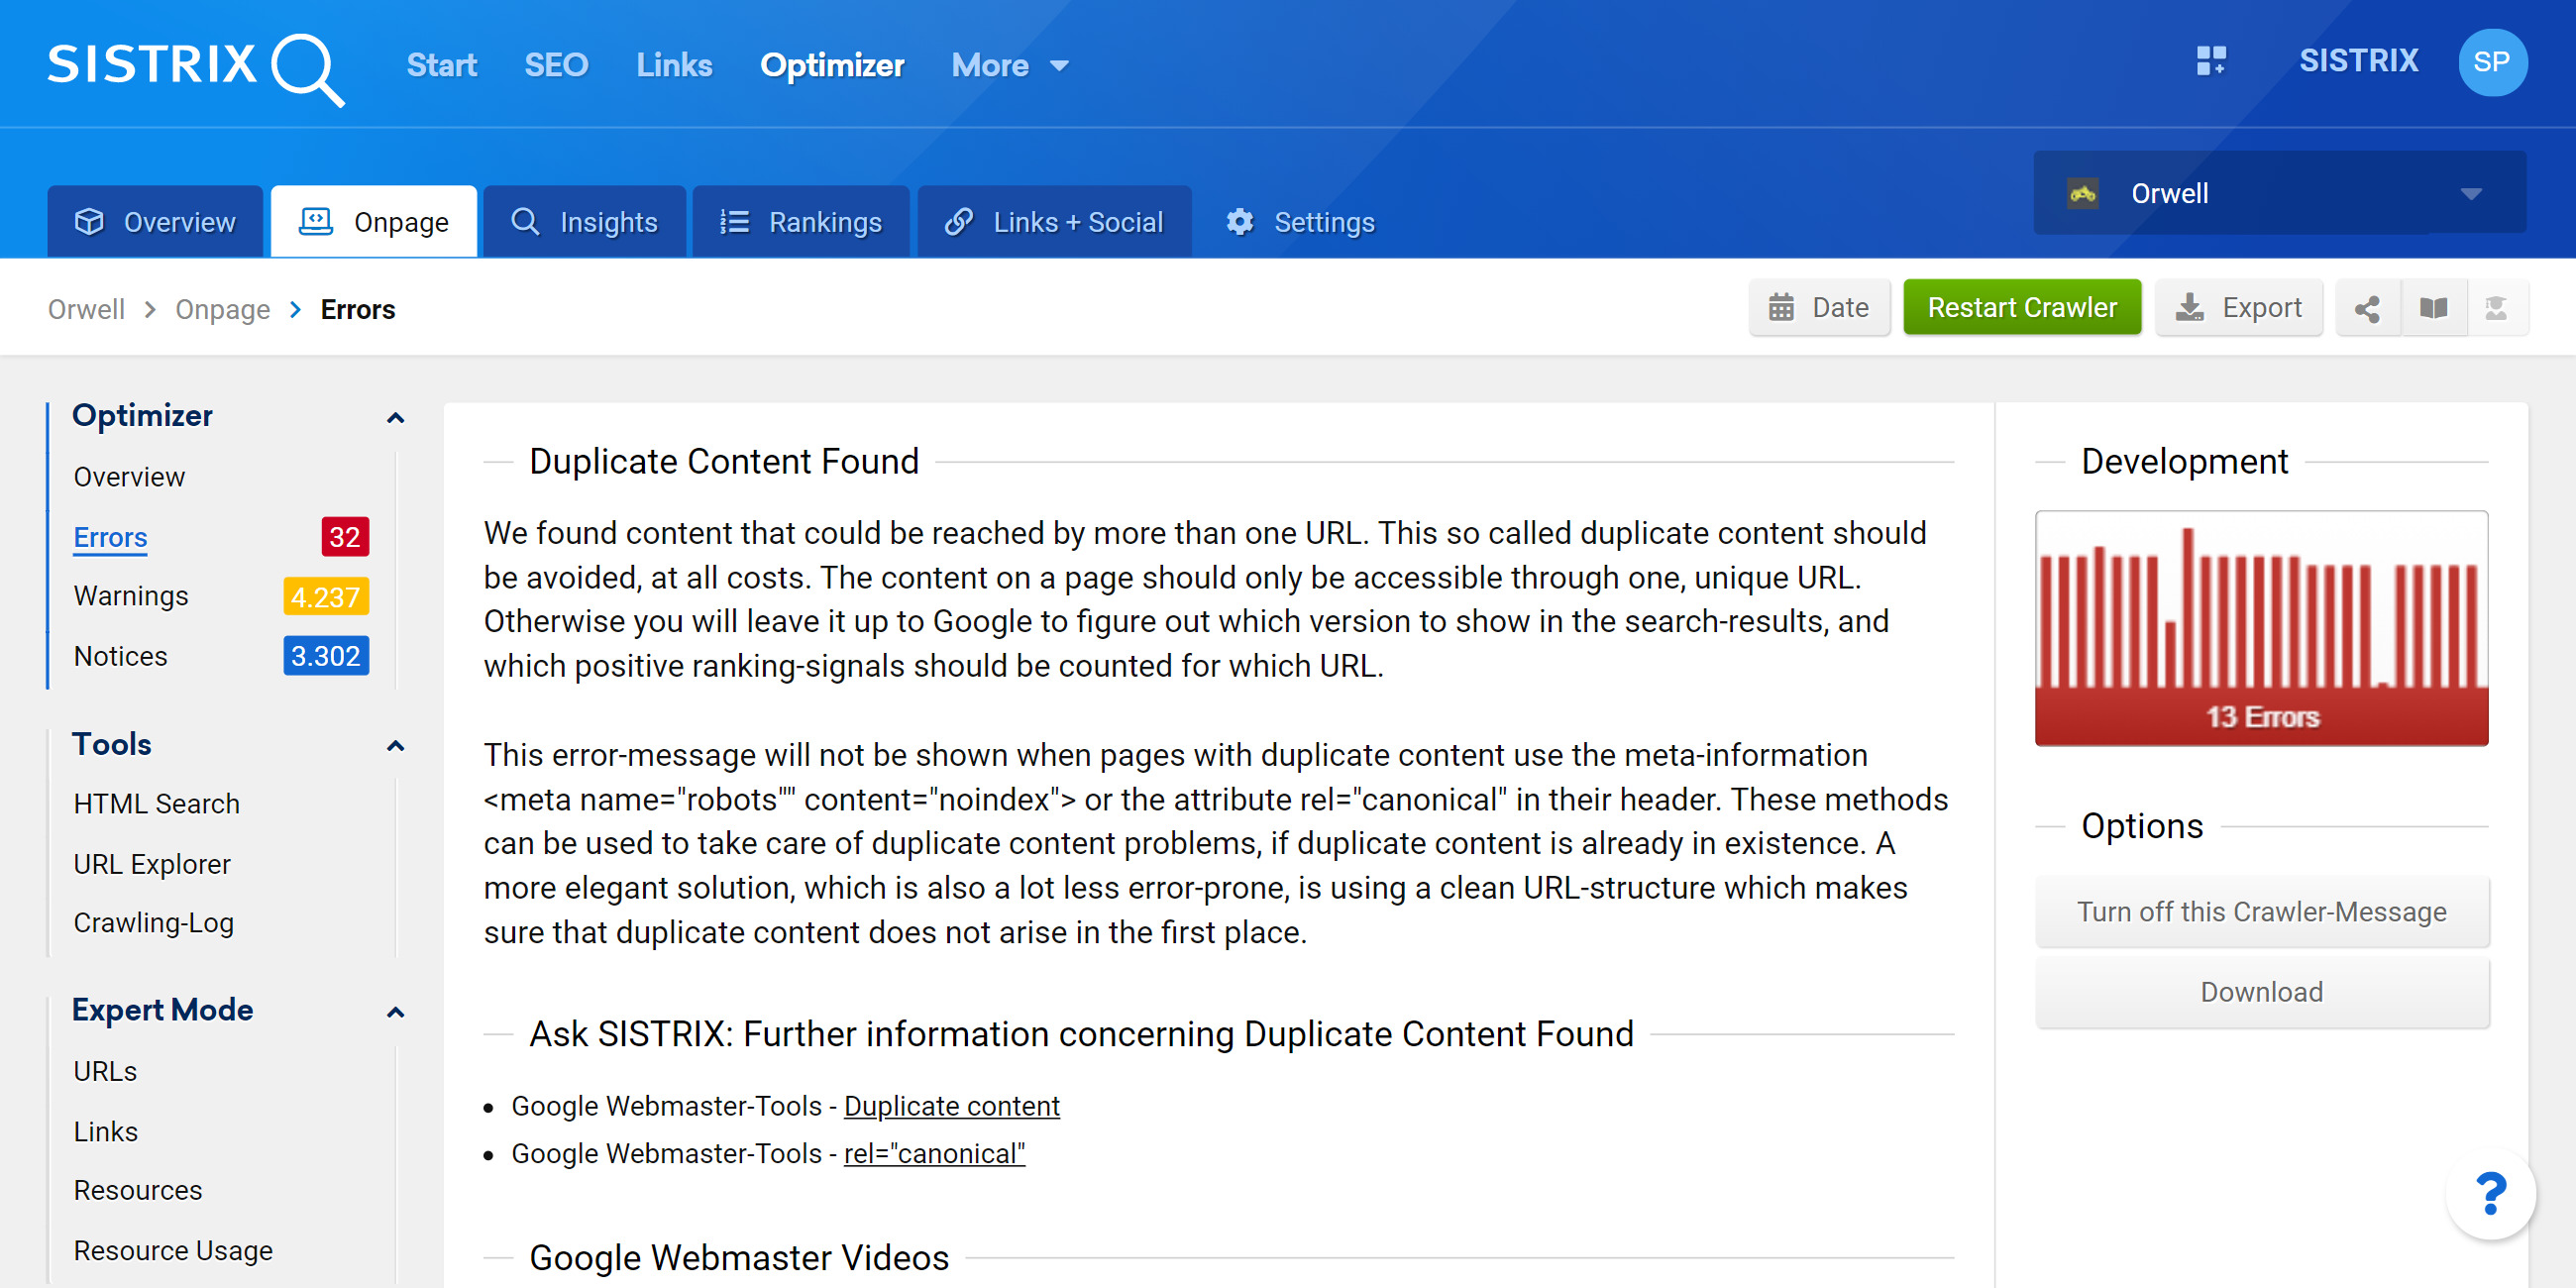 optimiser warnings about duplicate content